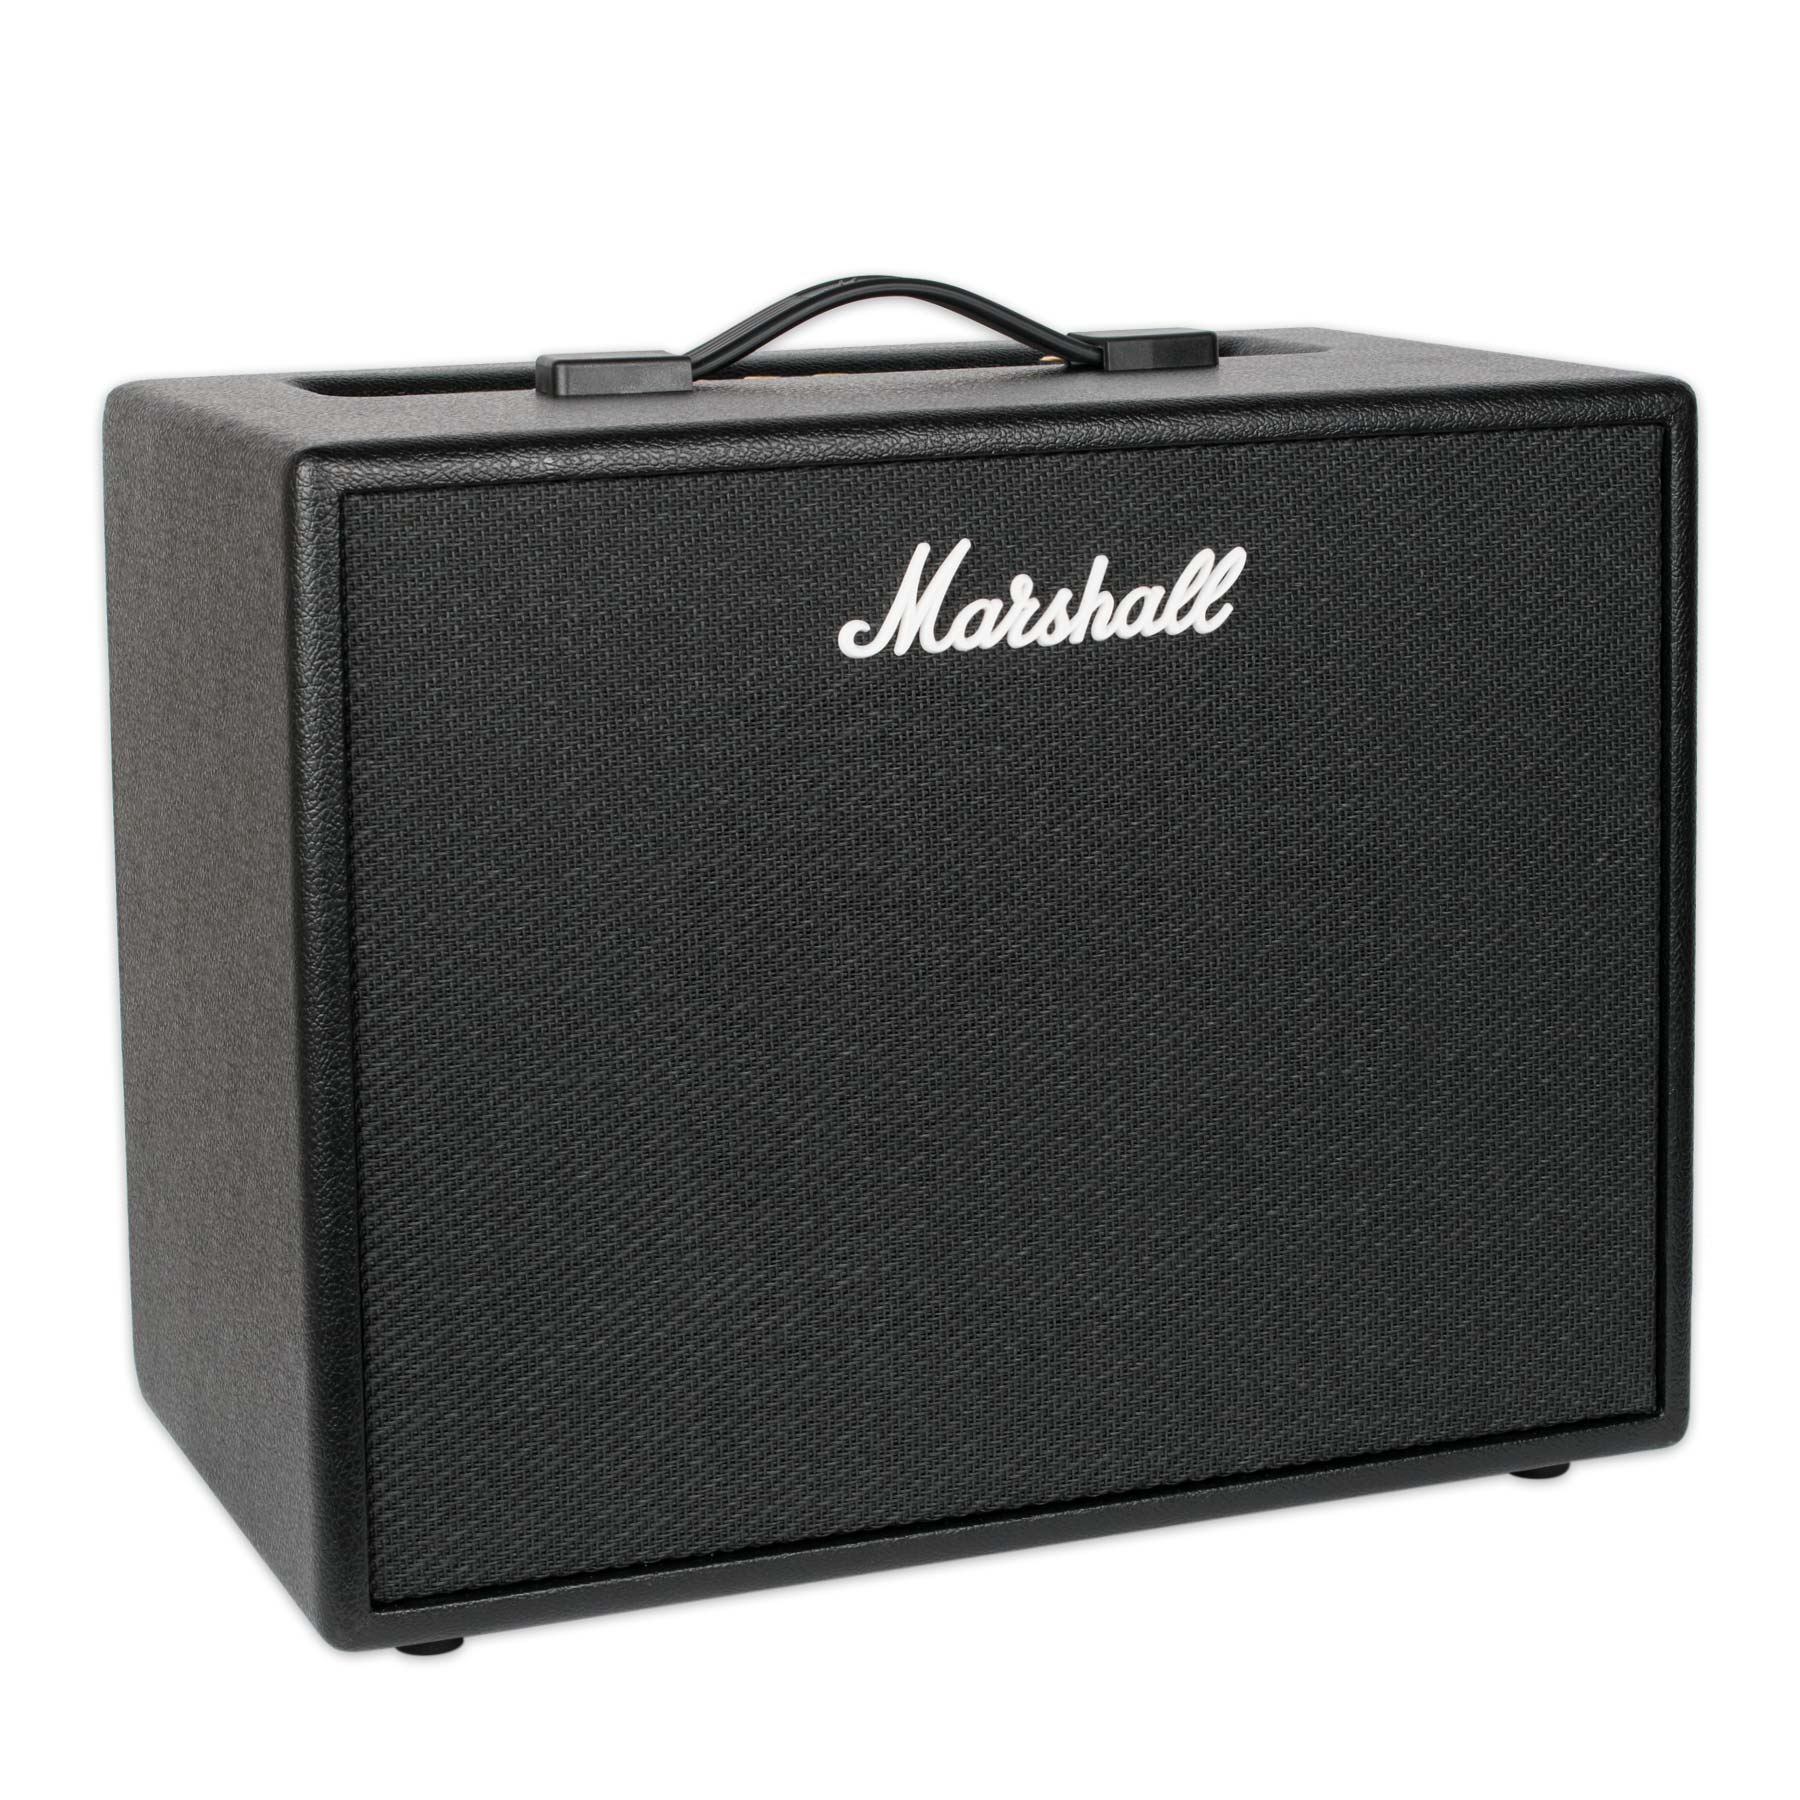 MARSHALL CODE 50 WATT 1x12 DIGITAL COMBO AMPLIFIER